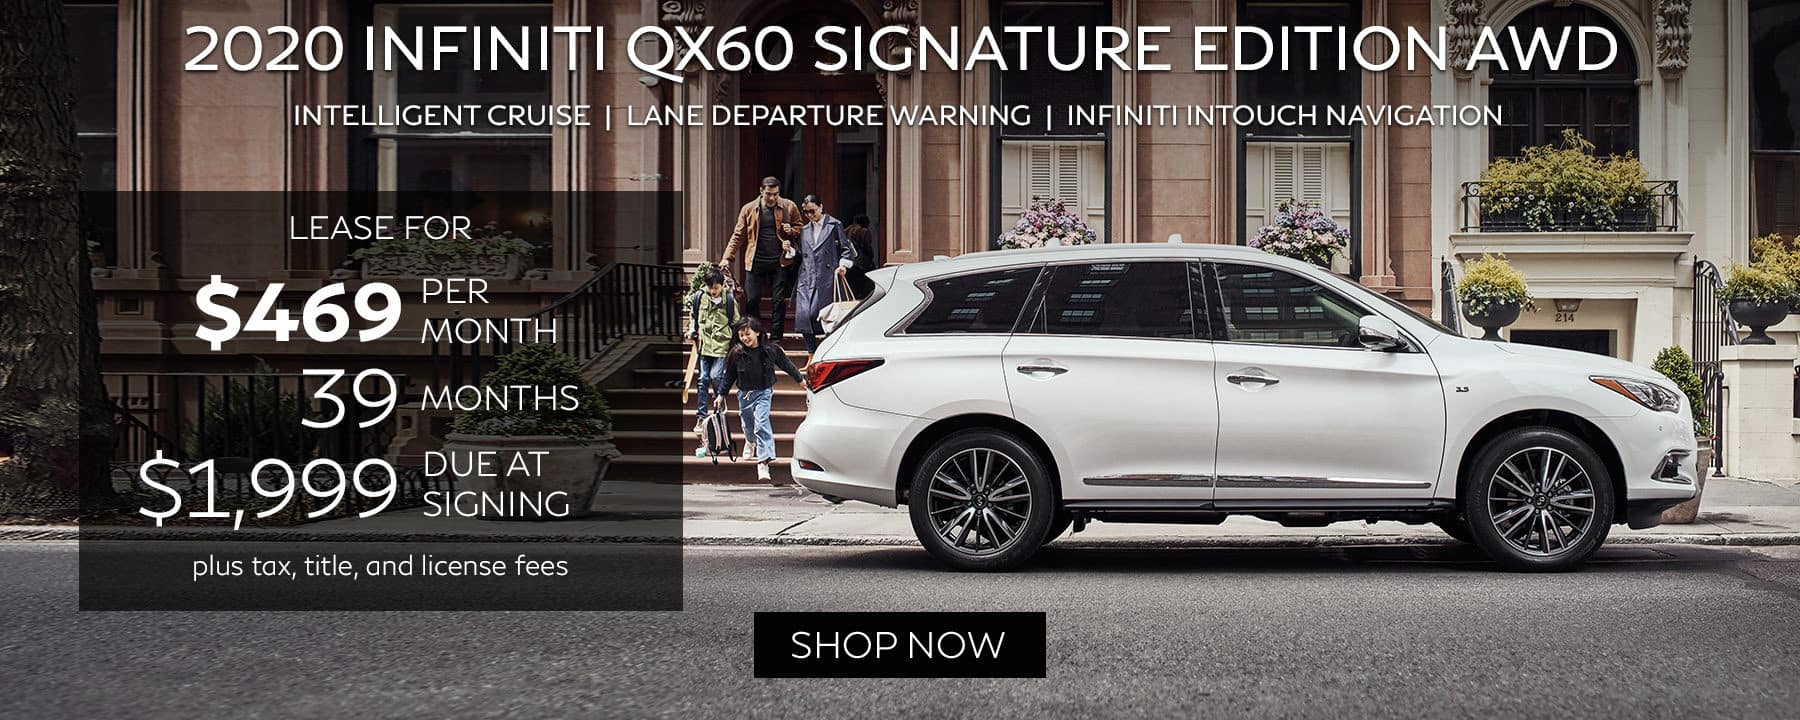 2020 INFINITI QX60 SIGNATURE EDITION AWD Lease for $469 per month with $1,999 due at signing.